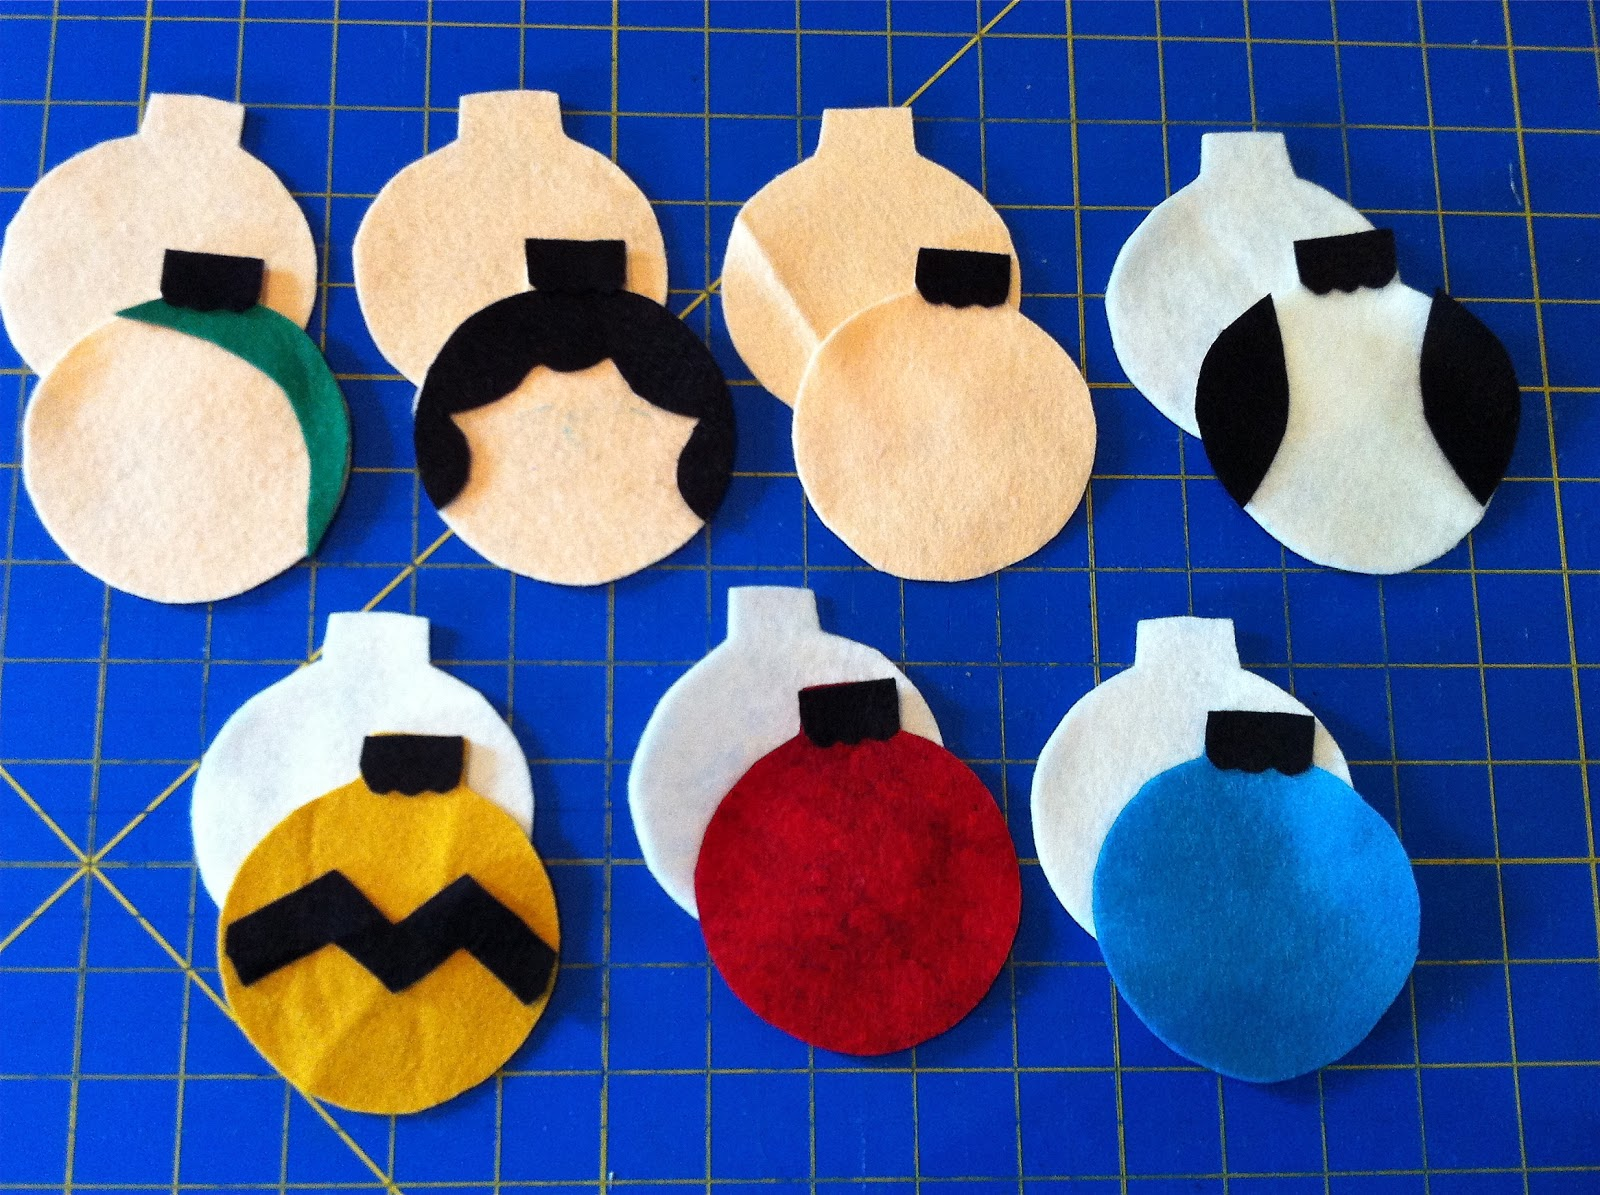 cut out the felt shapes from the ornament shape cut 6 peach 5 white and one each red yellow and blue each ornament will have a front and back main piece - Charlie Brown Christmas Decorating Ideas